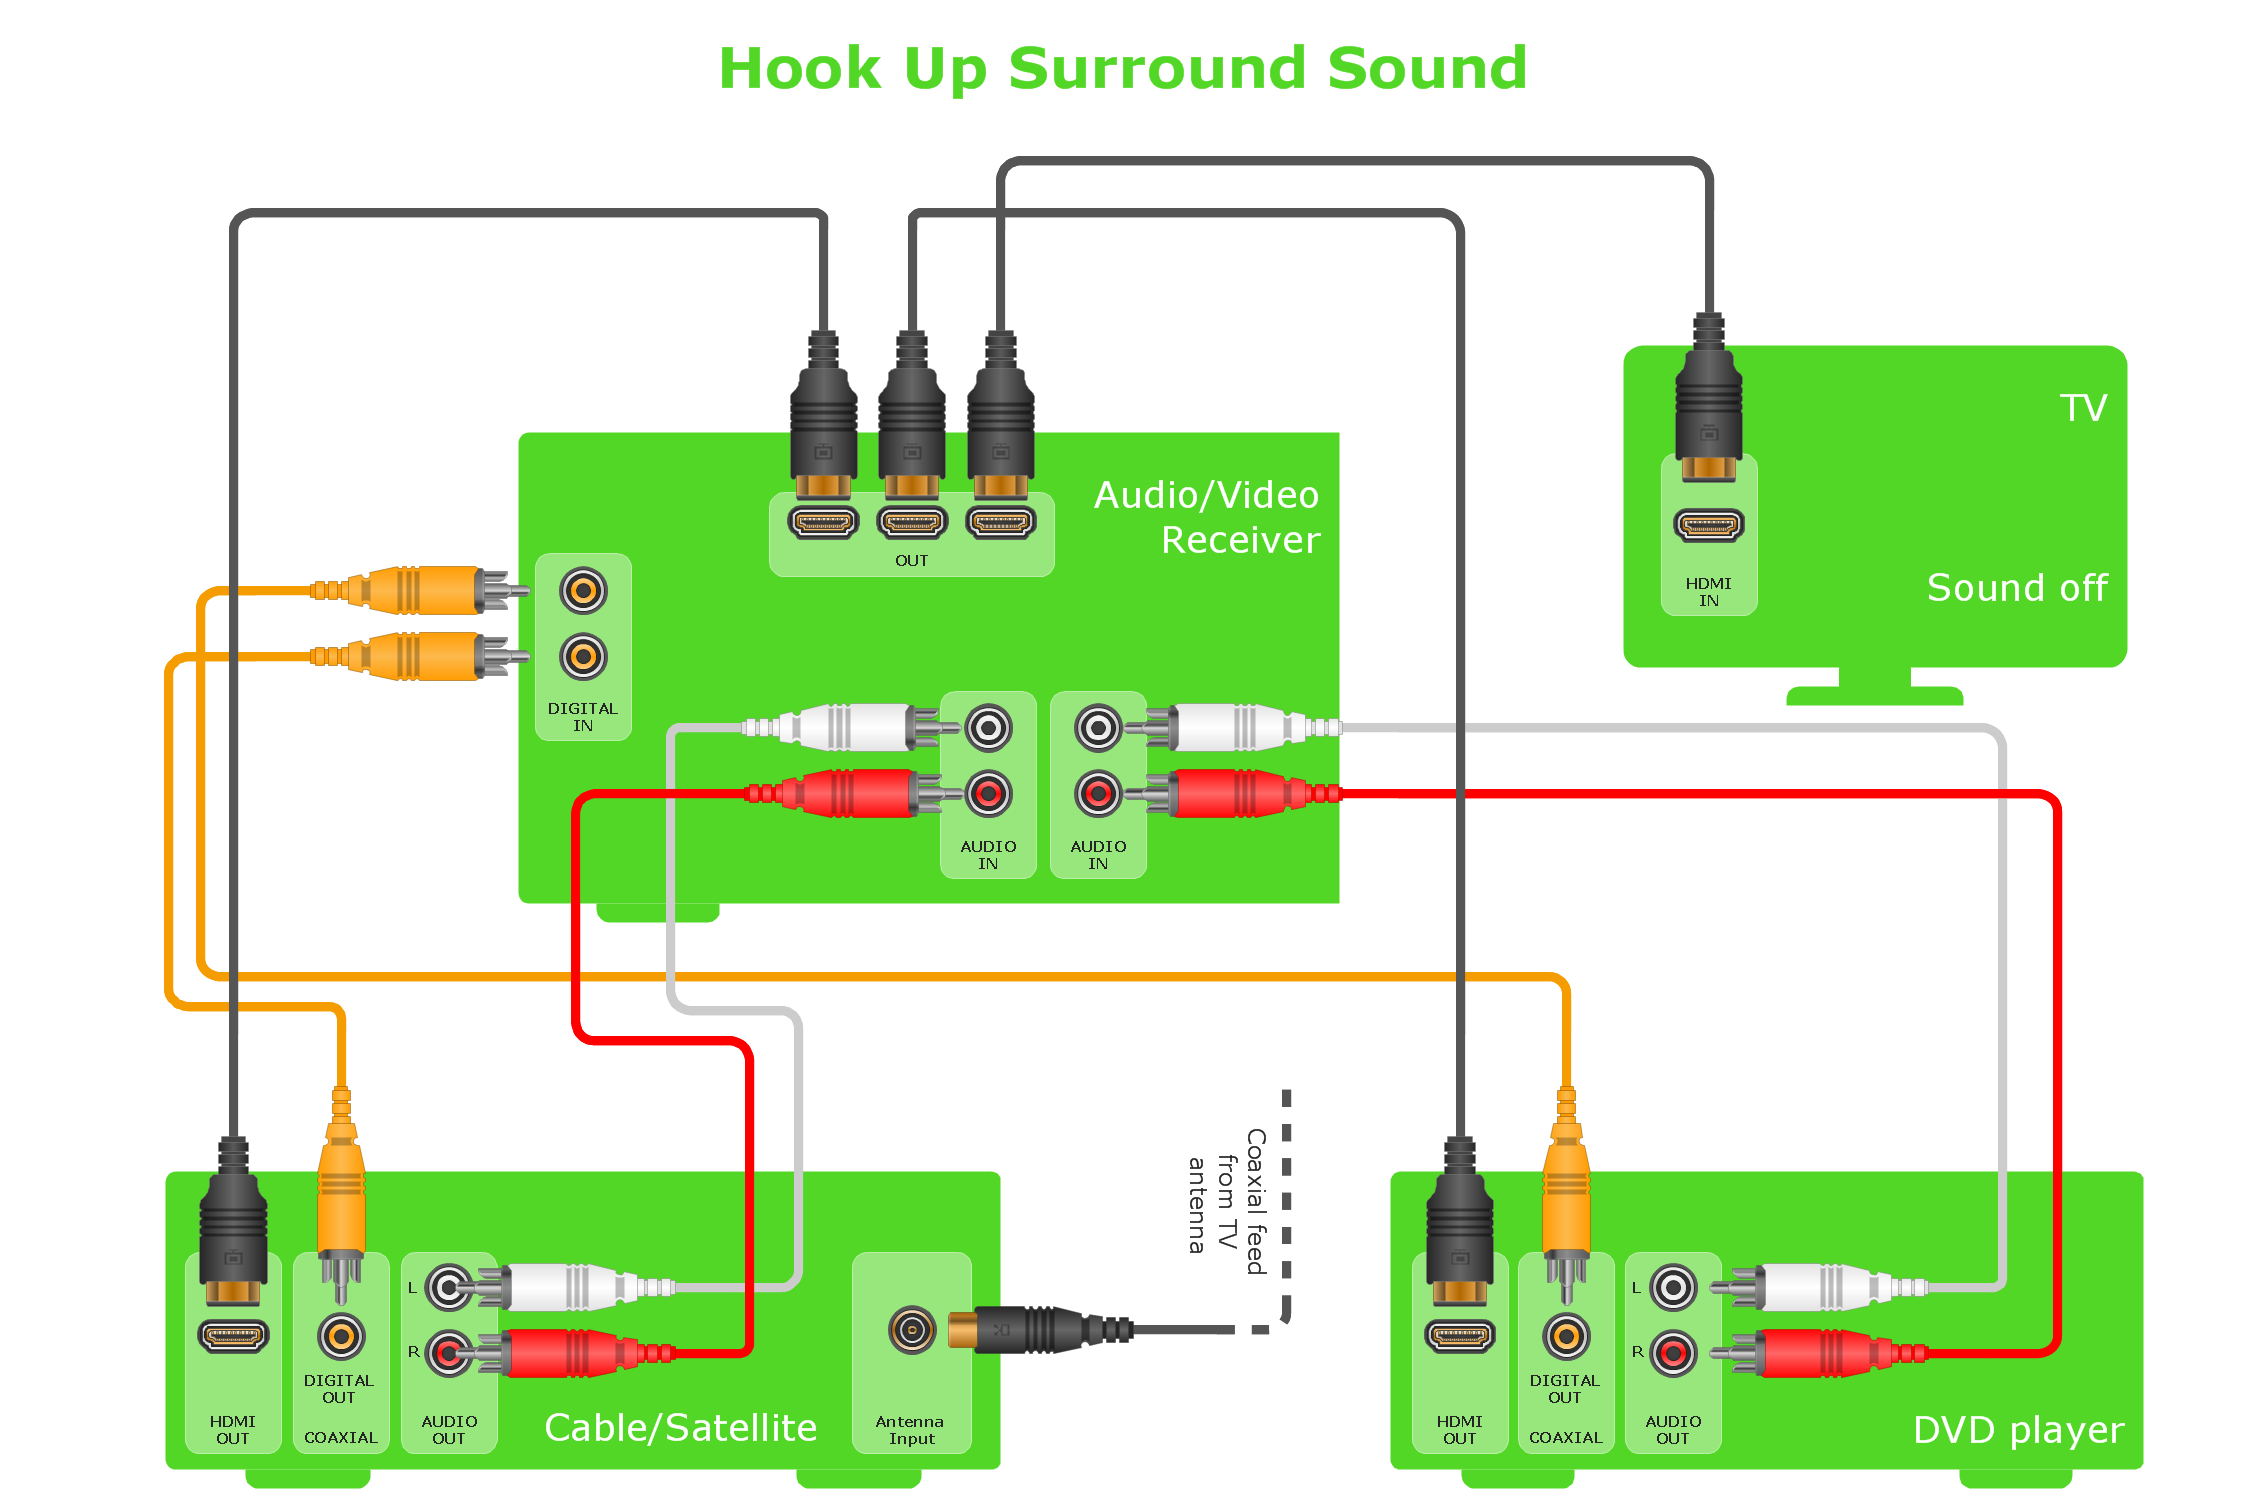 audio  amp  video connector types   basic flowchart symbols and    hook up diagram   home entertainment system   surround sound